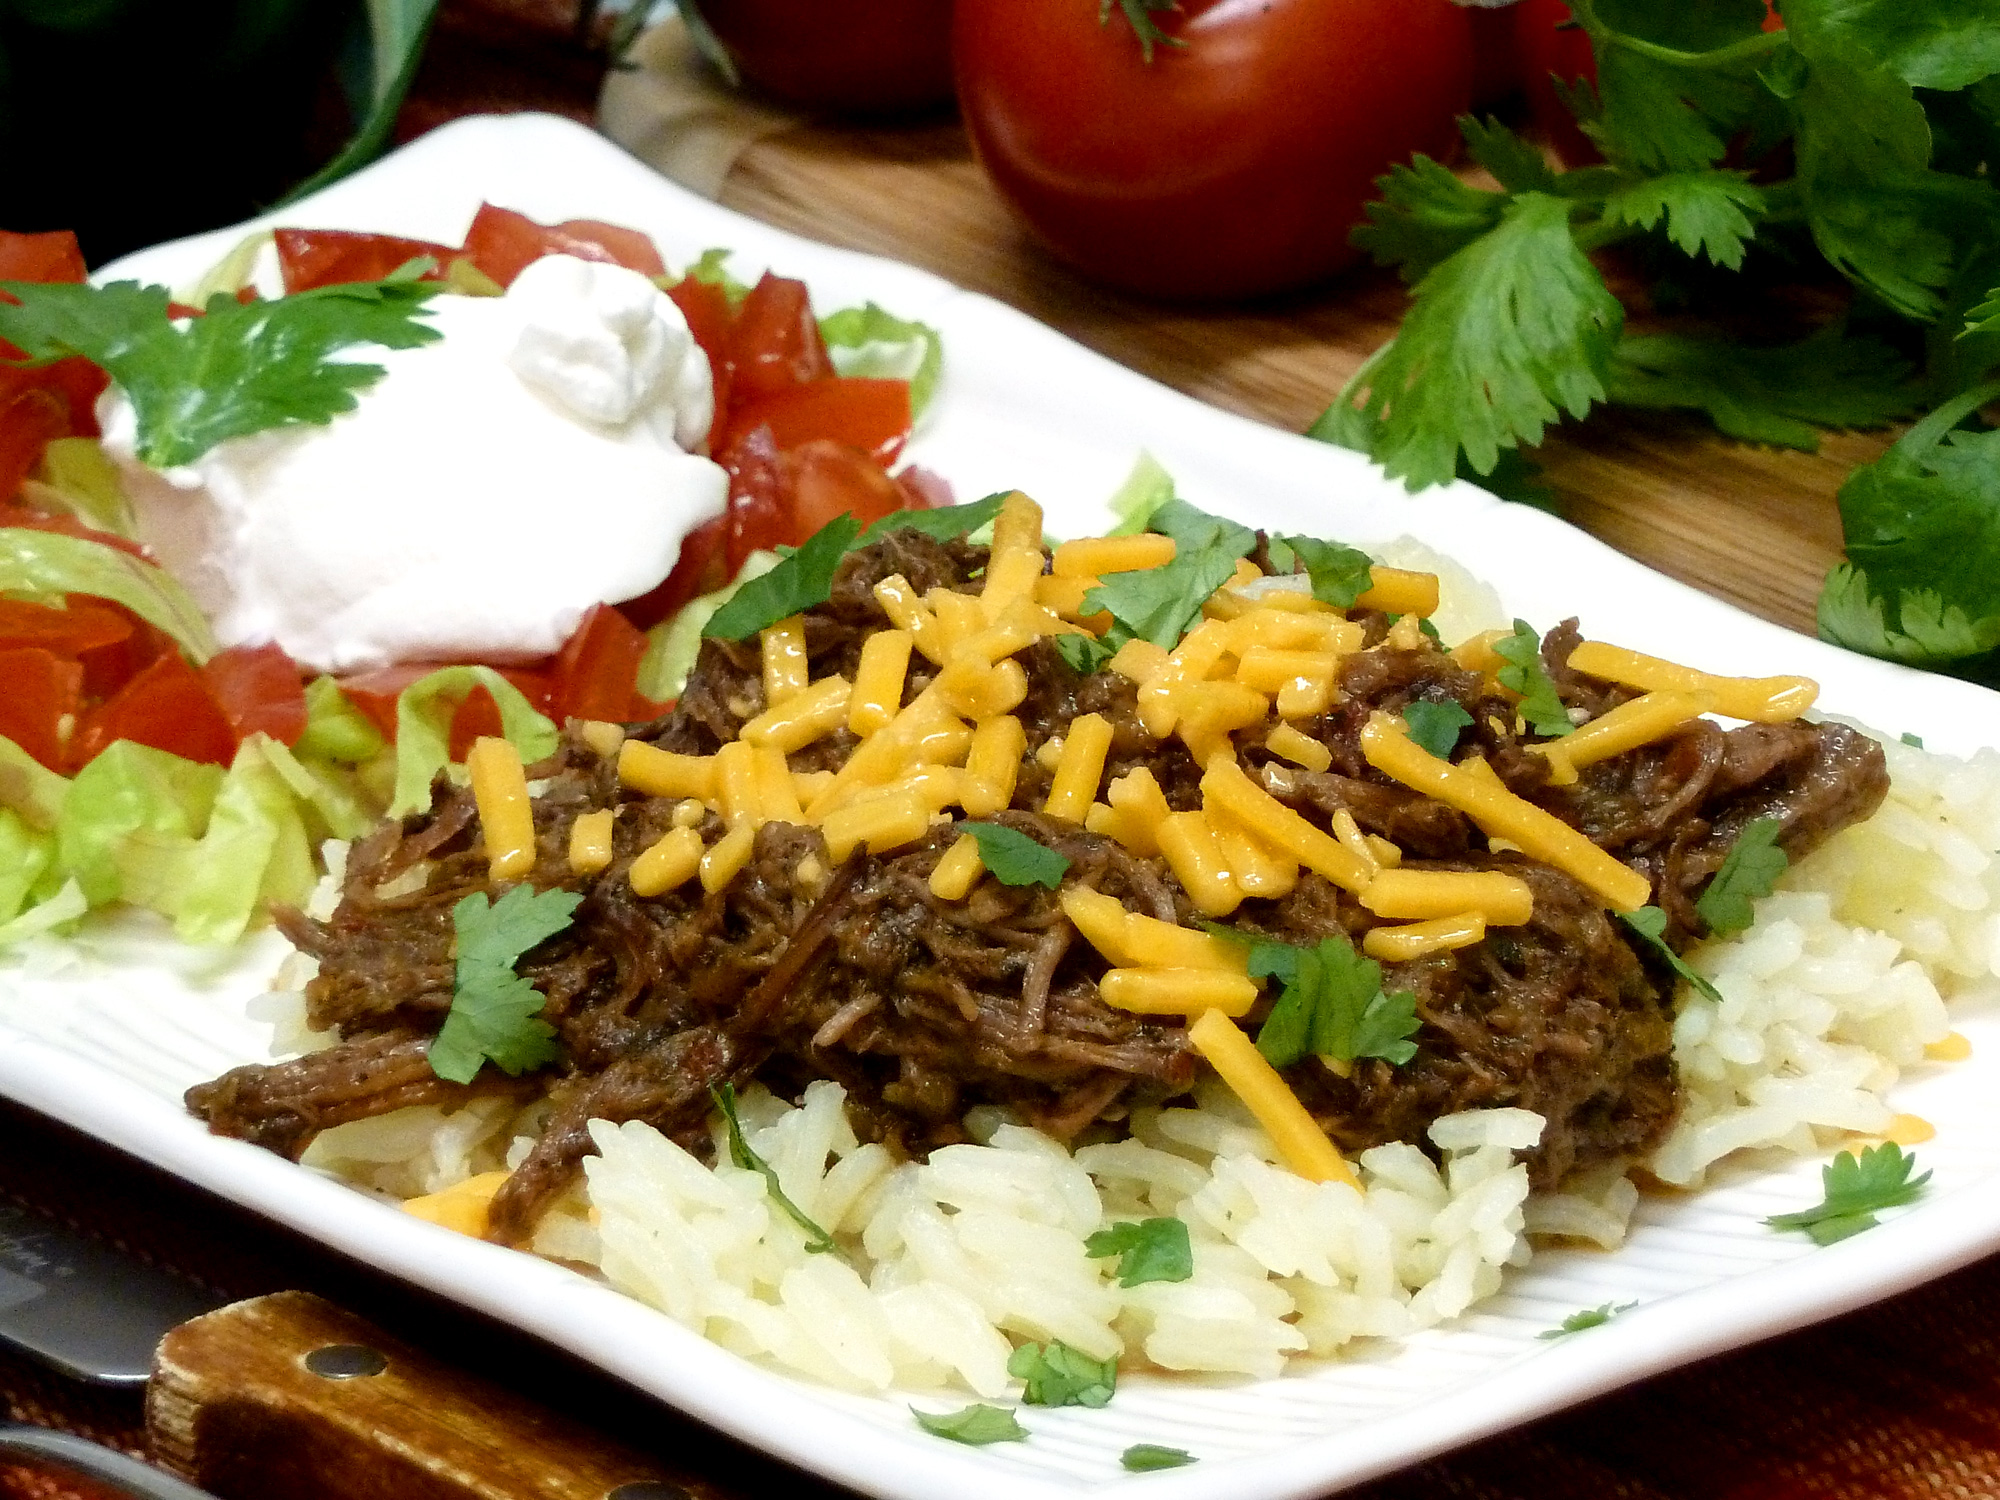 Green Chile Shredded Beef is easily made in the crockpot and may be used 10 different ways.